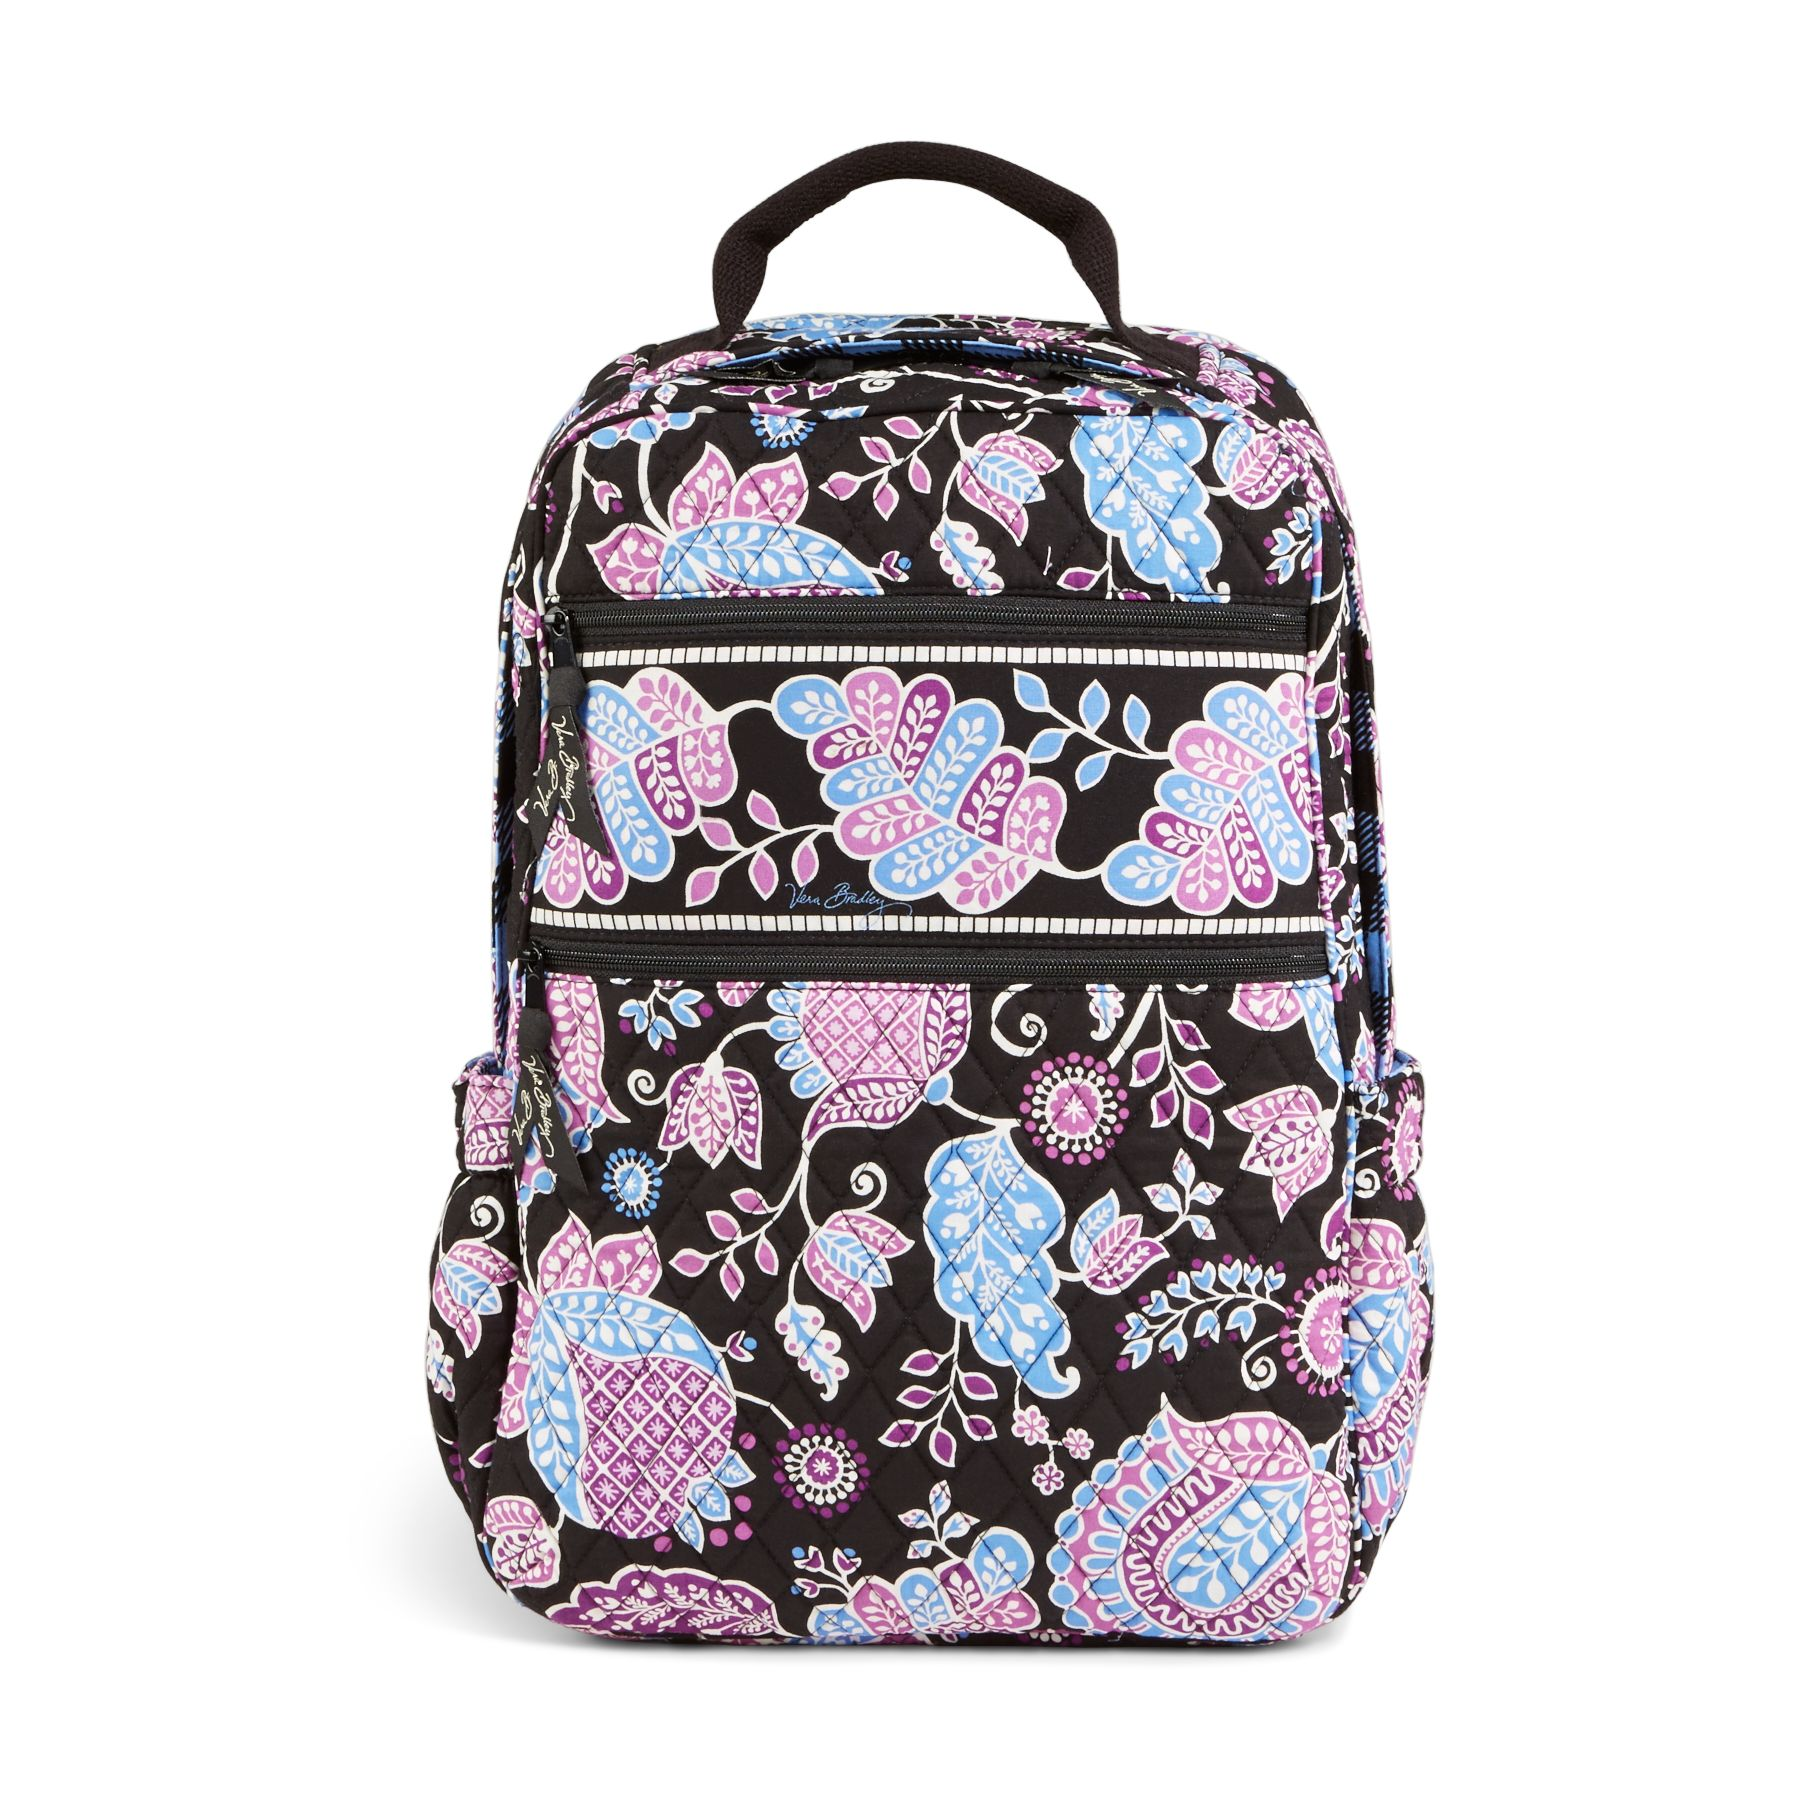 Vera Bradley Tech Laptop Backpack Bag